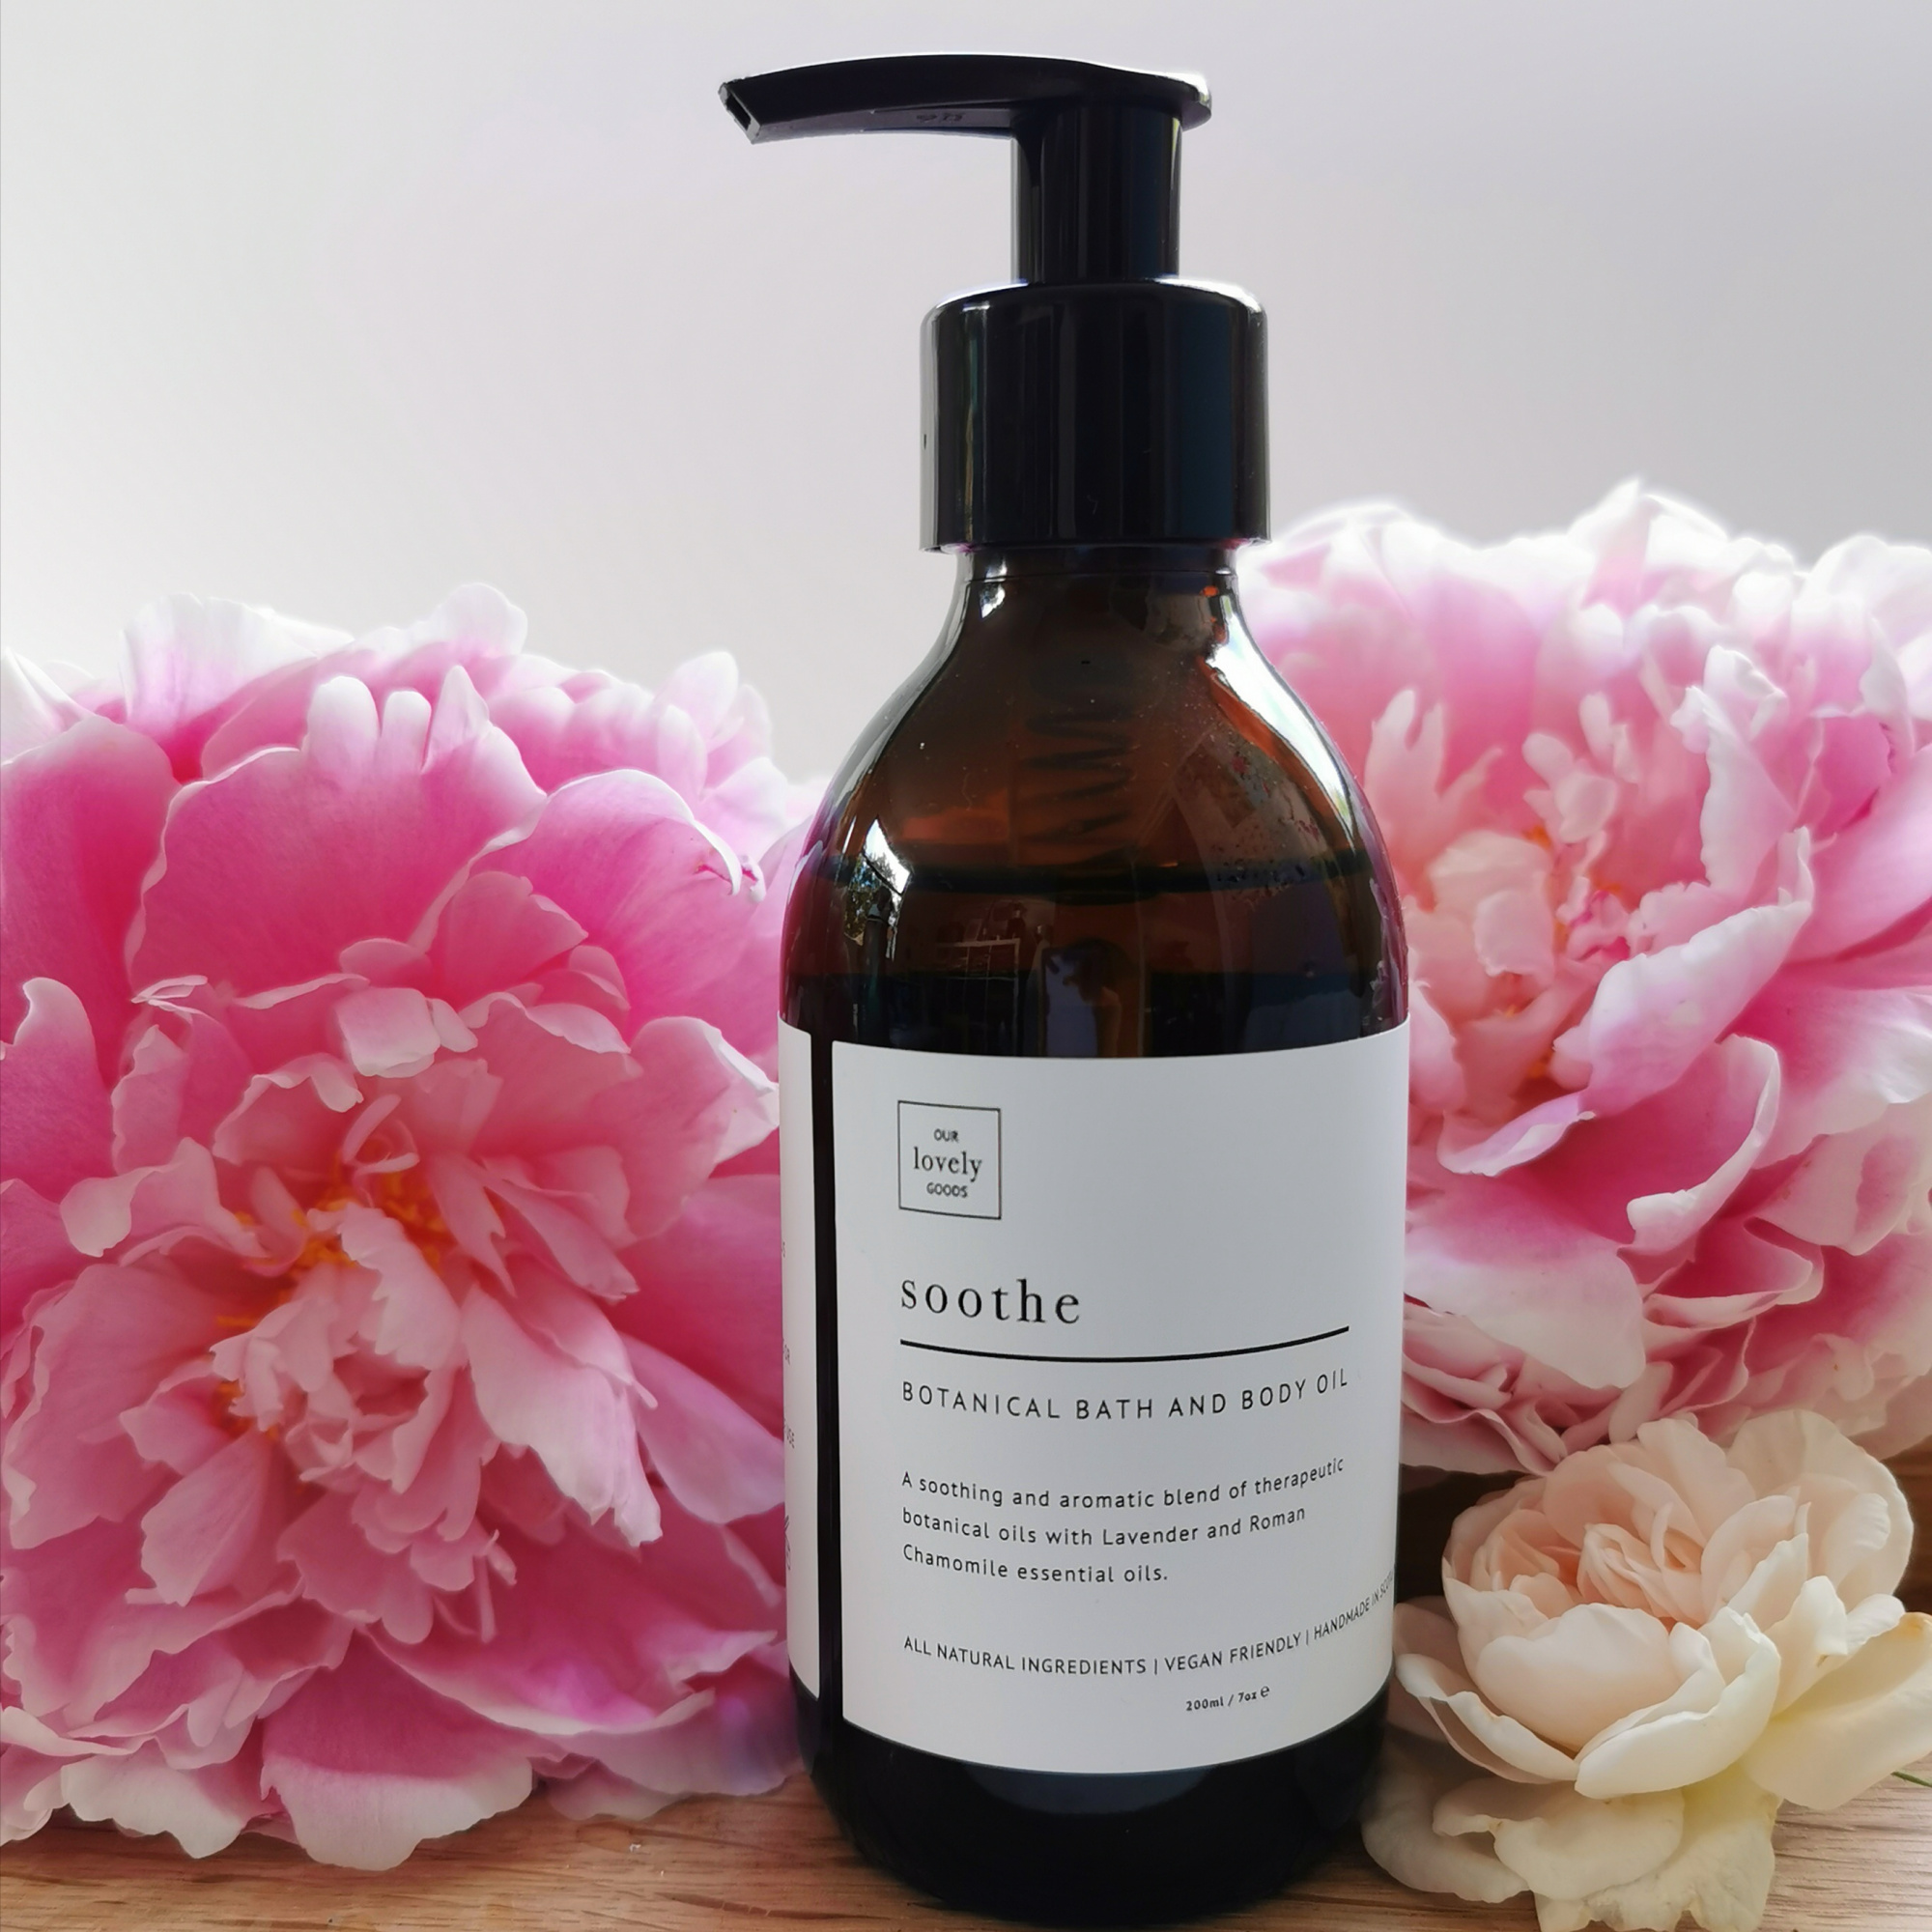 Our Lovely Goods Botanical Bath and Body Oil